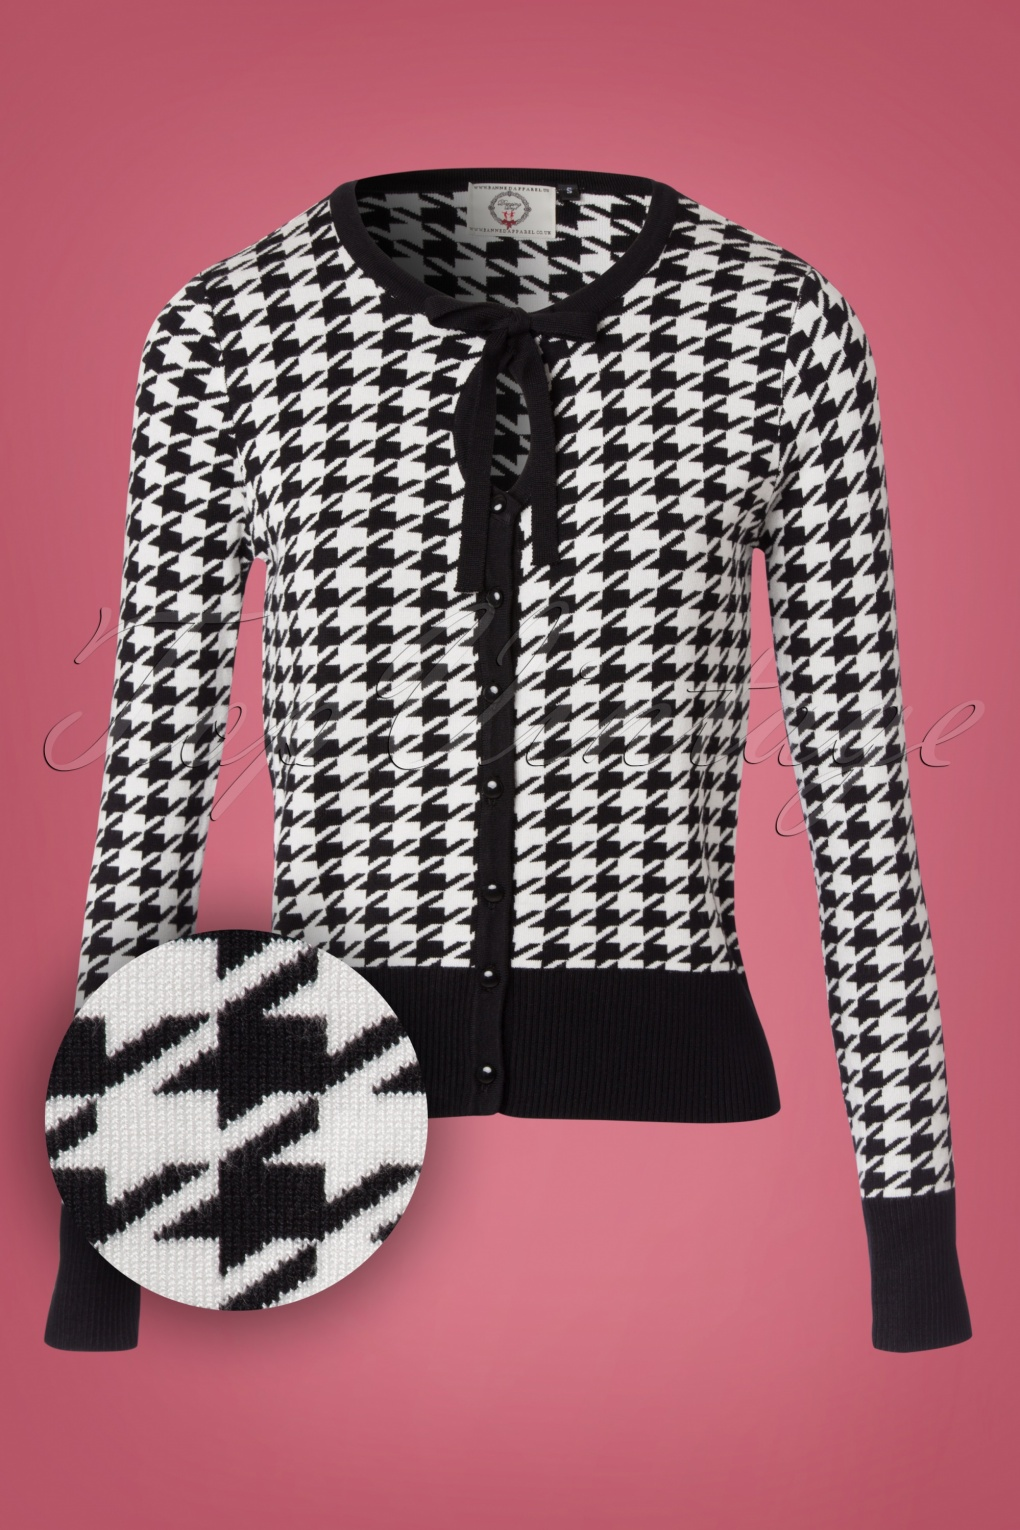 Retro Vintage Sweaters 50s Izzy Houndstooth Cardigan in Black and White £37.90 AT vintagedancer.com